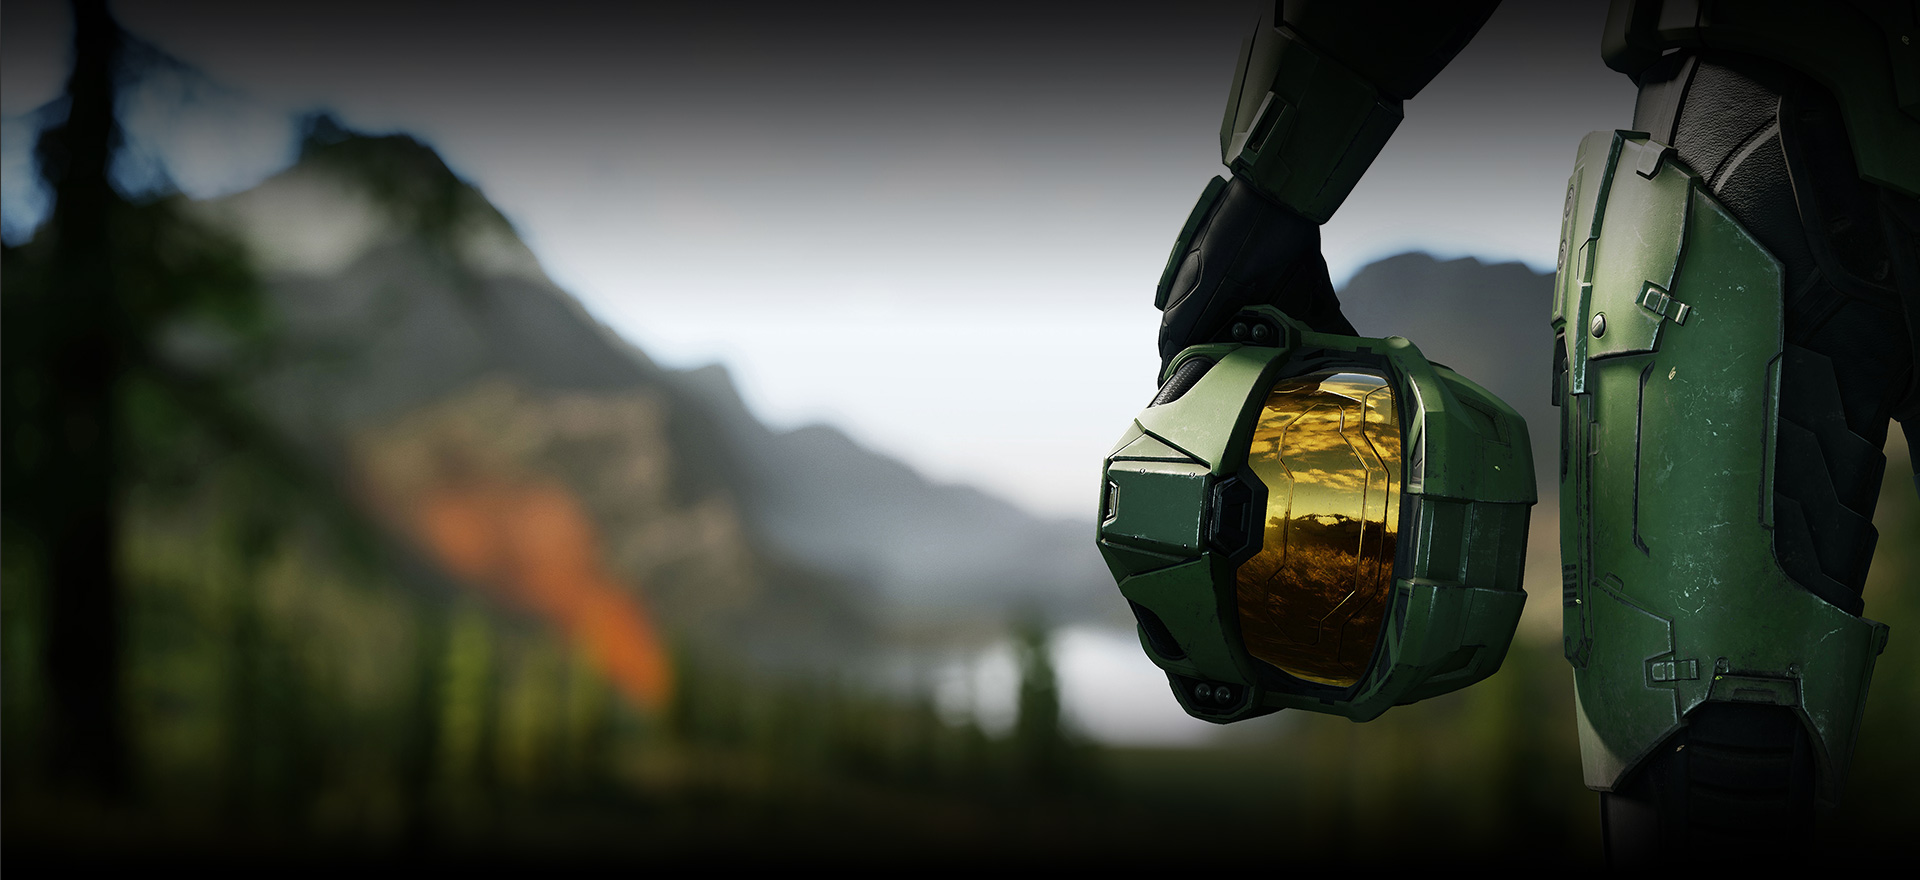 Halo Universe: closeup of Master chief's hand holding his helmet with mountain scene in background.